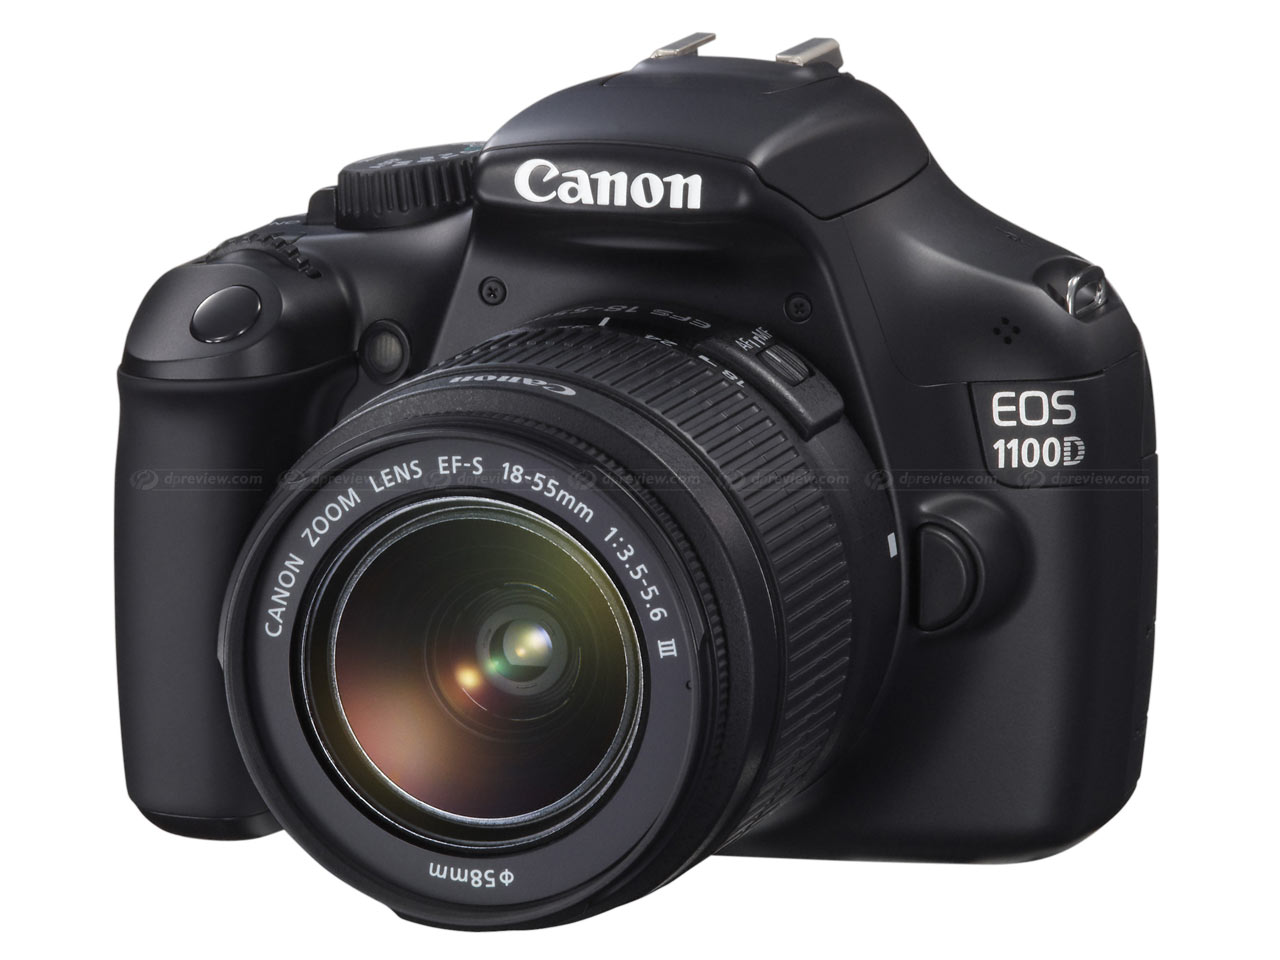 Camera Canon Eos 1100d 12mp Dslr Camera With 18-55mm Lens canon rebel t3 eos 1100d announced and previewed digital london uk 7th february 2011 today unveils the new slr dslr for consumers who want to